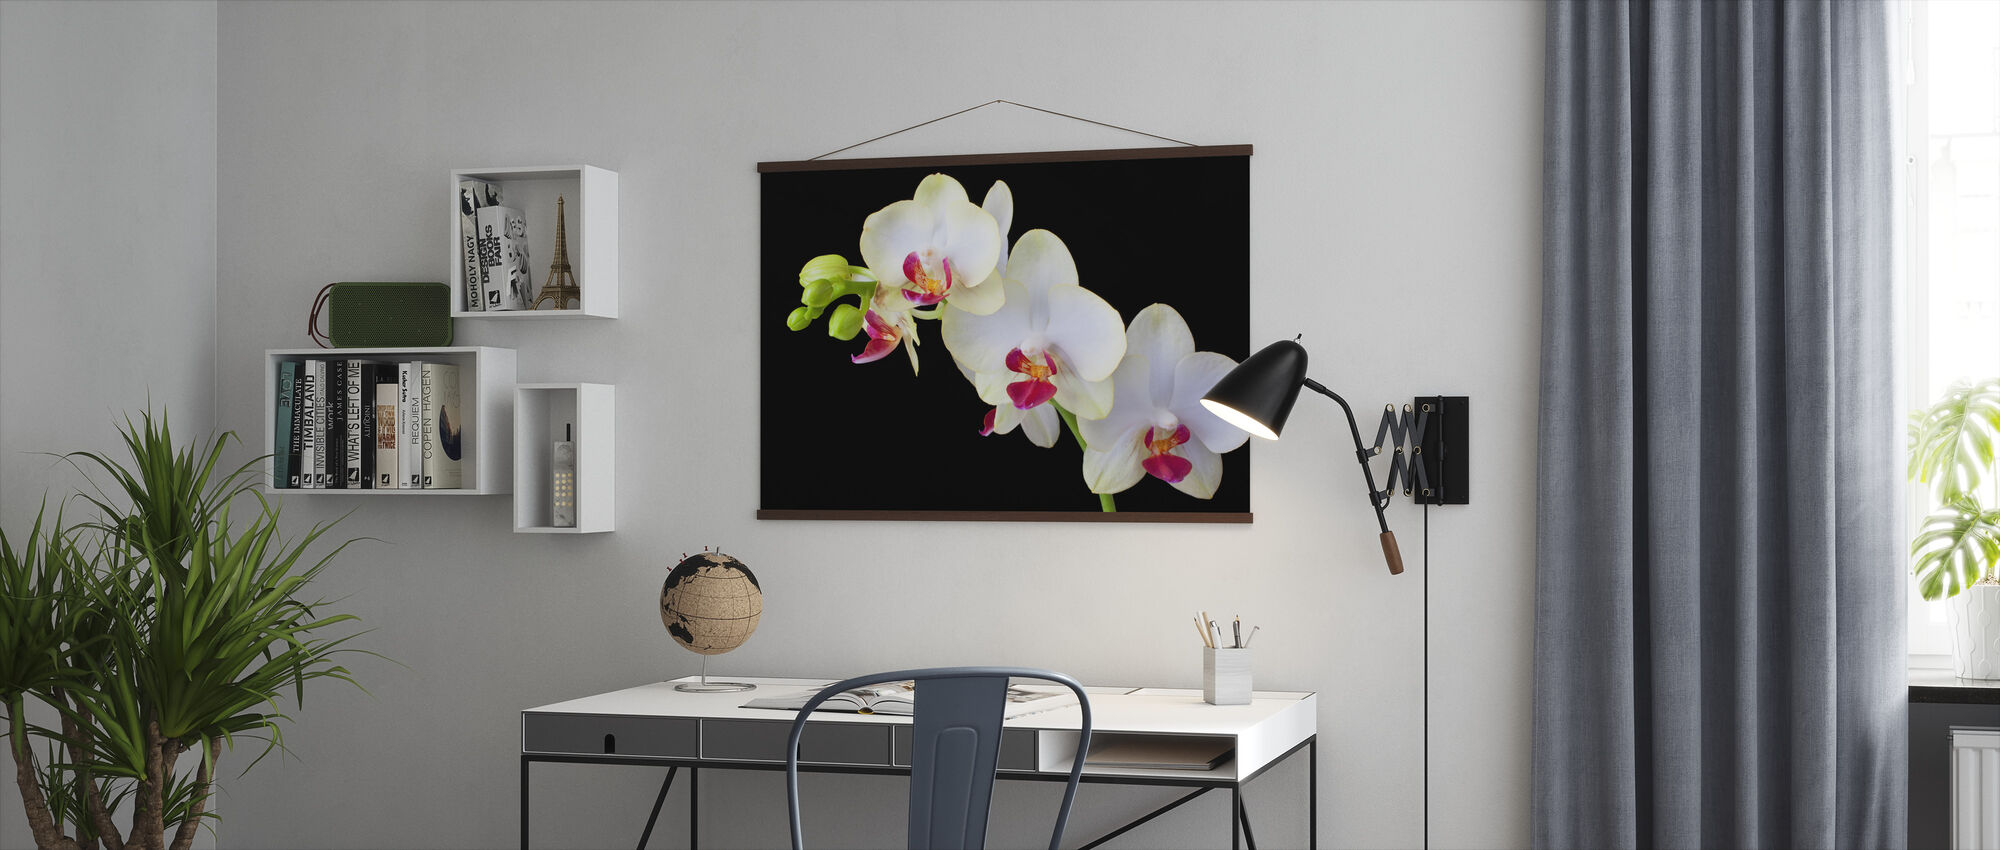 White Orchids on Black Background - Poster - Office